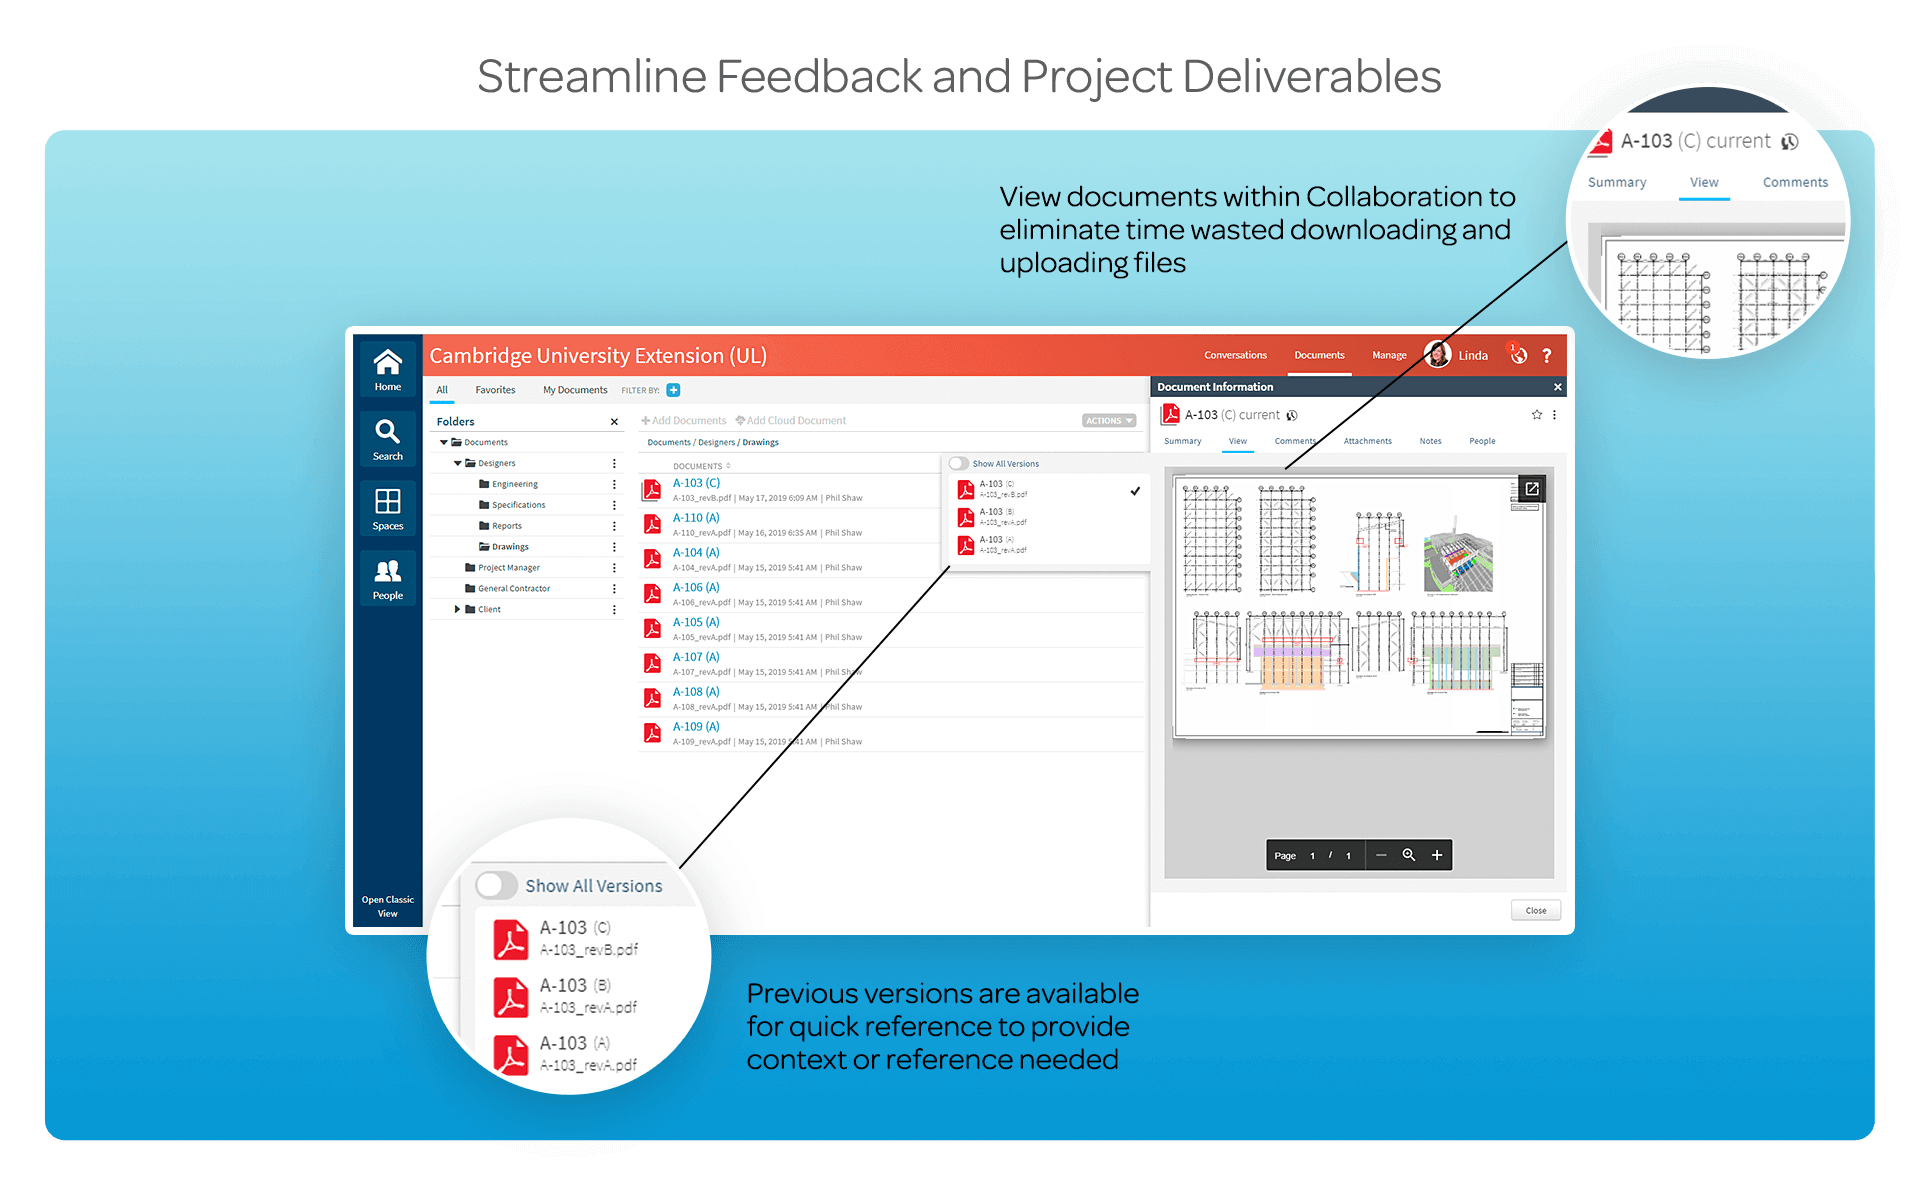 Streamline Feedback and Project Deliverables